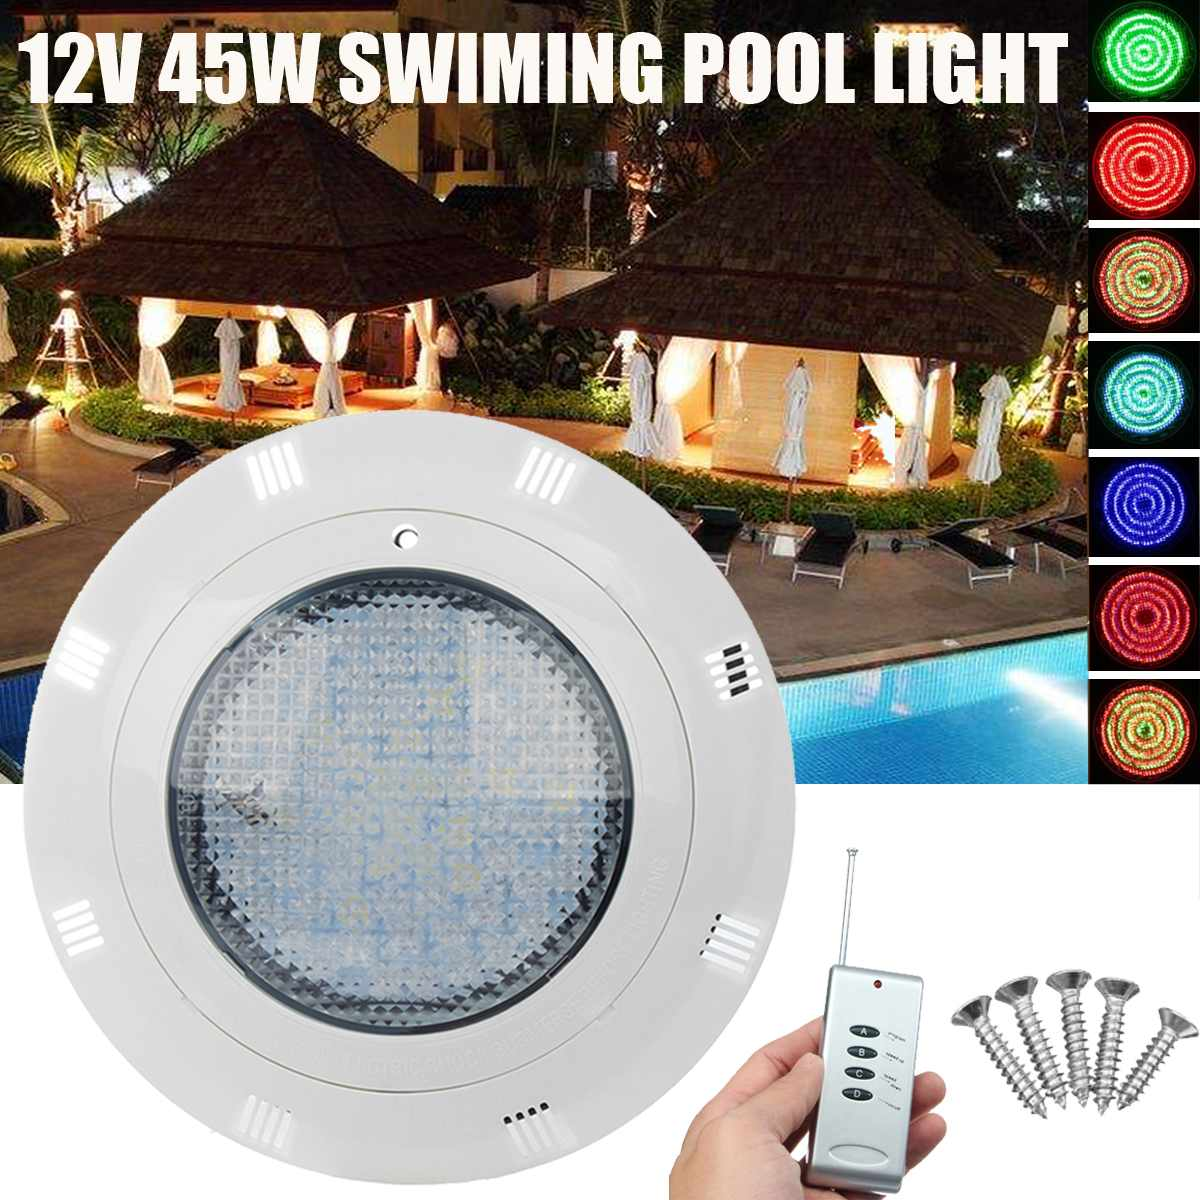 45W AC12V LED RGB Swimming Pool Light with Remote Controller Waterproof IP68 Submersible Light Underwater Night Lamp Outdoor